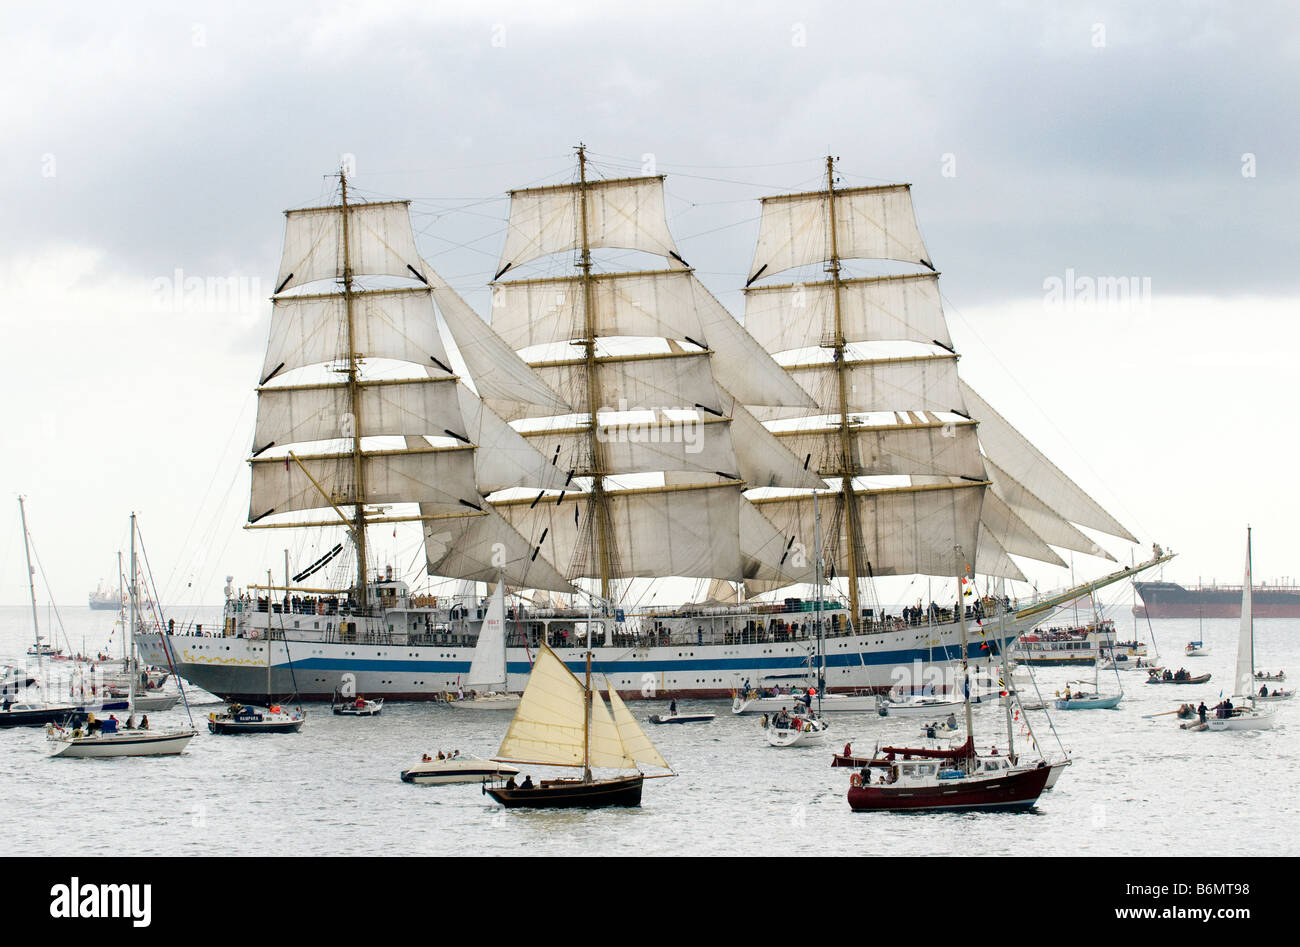 Russian Class A Tall Ship 'Mir surrounded by smaller ships during Funchal 500 Tall Ships Regatta, Falmouth, - Stock Image